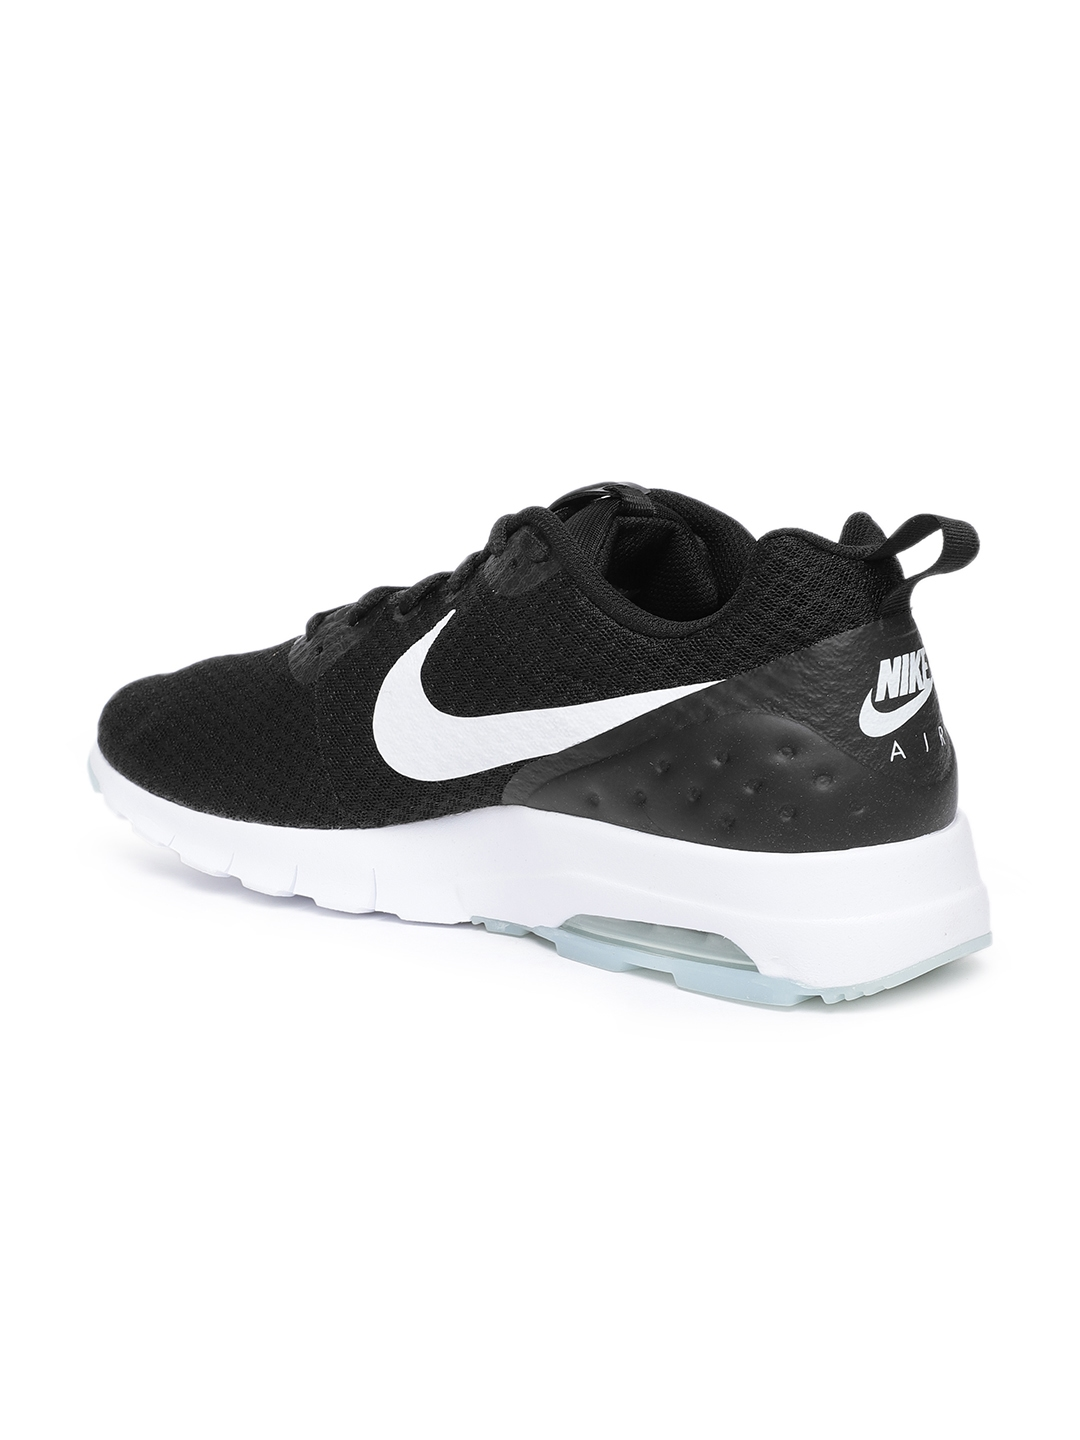 09253e56571a Buy Nike Men Black Air Max Motion LW Running Shoes - Sports Shoes ...